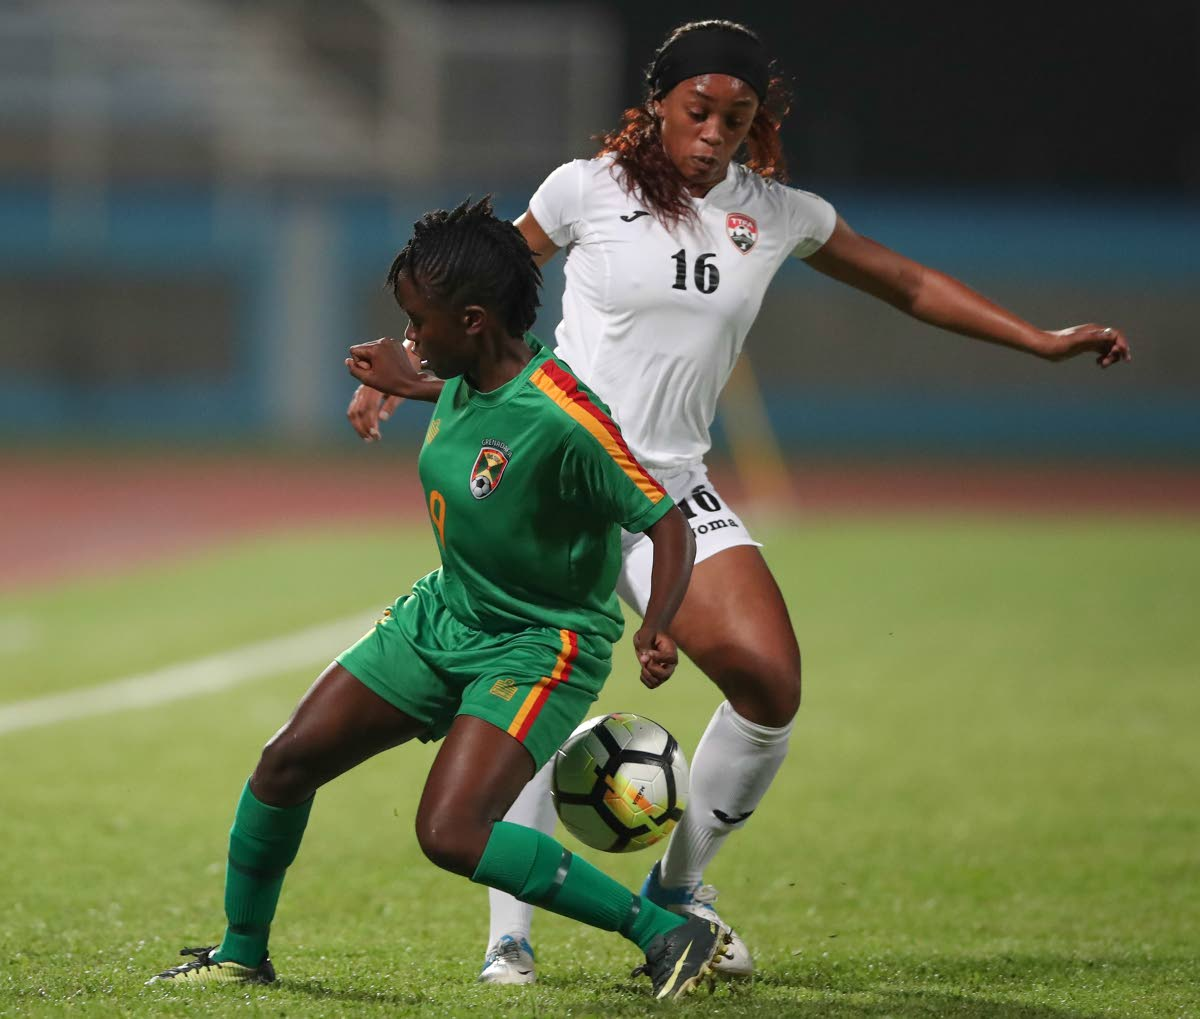 Trinidad and Tobago's Linda Hinds, right, battles Grenada's Sheranda Charles in the CFU Women's Challenge Series 2018 at the Ato Boldon Stadium, Couva, recently.